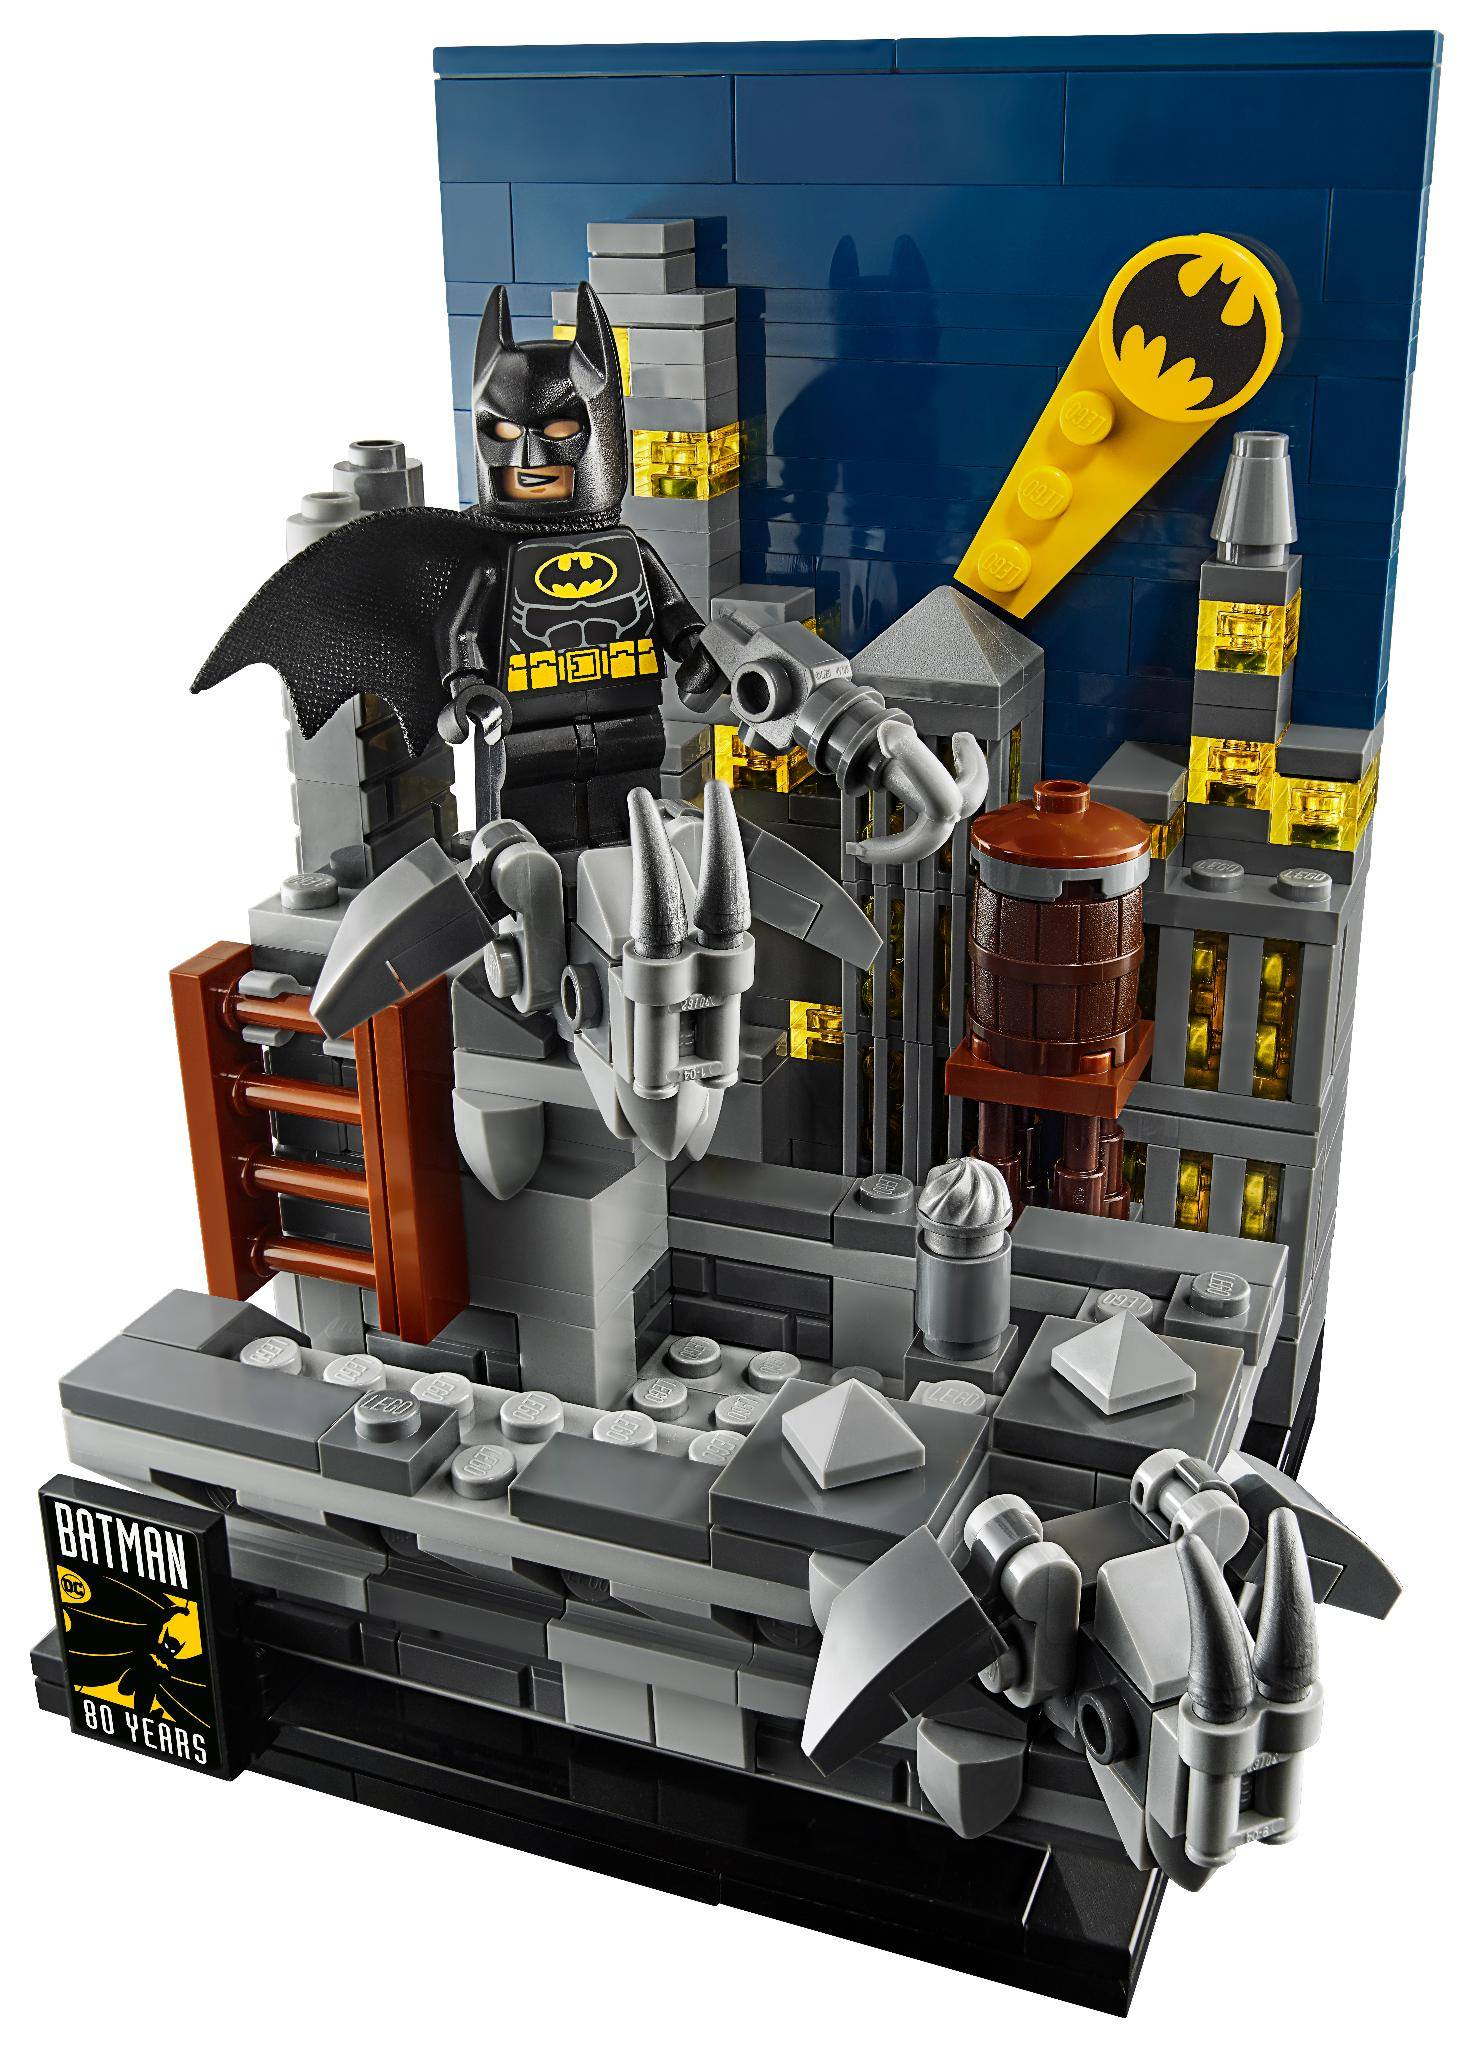 LEGO Batman The Dark Knight of Gotham City Brickfinder 03